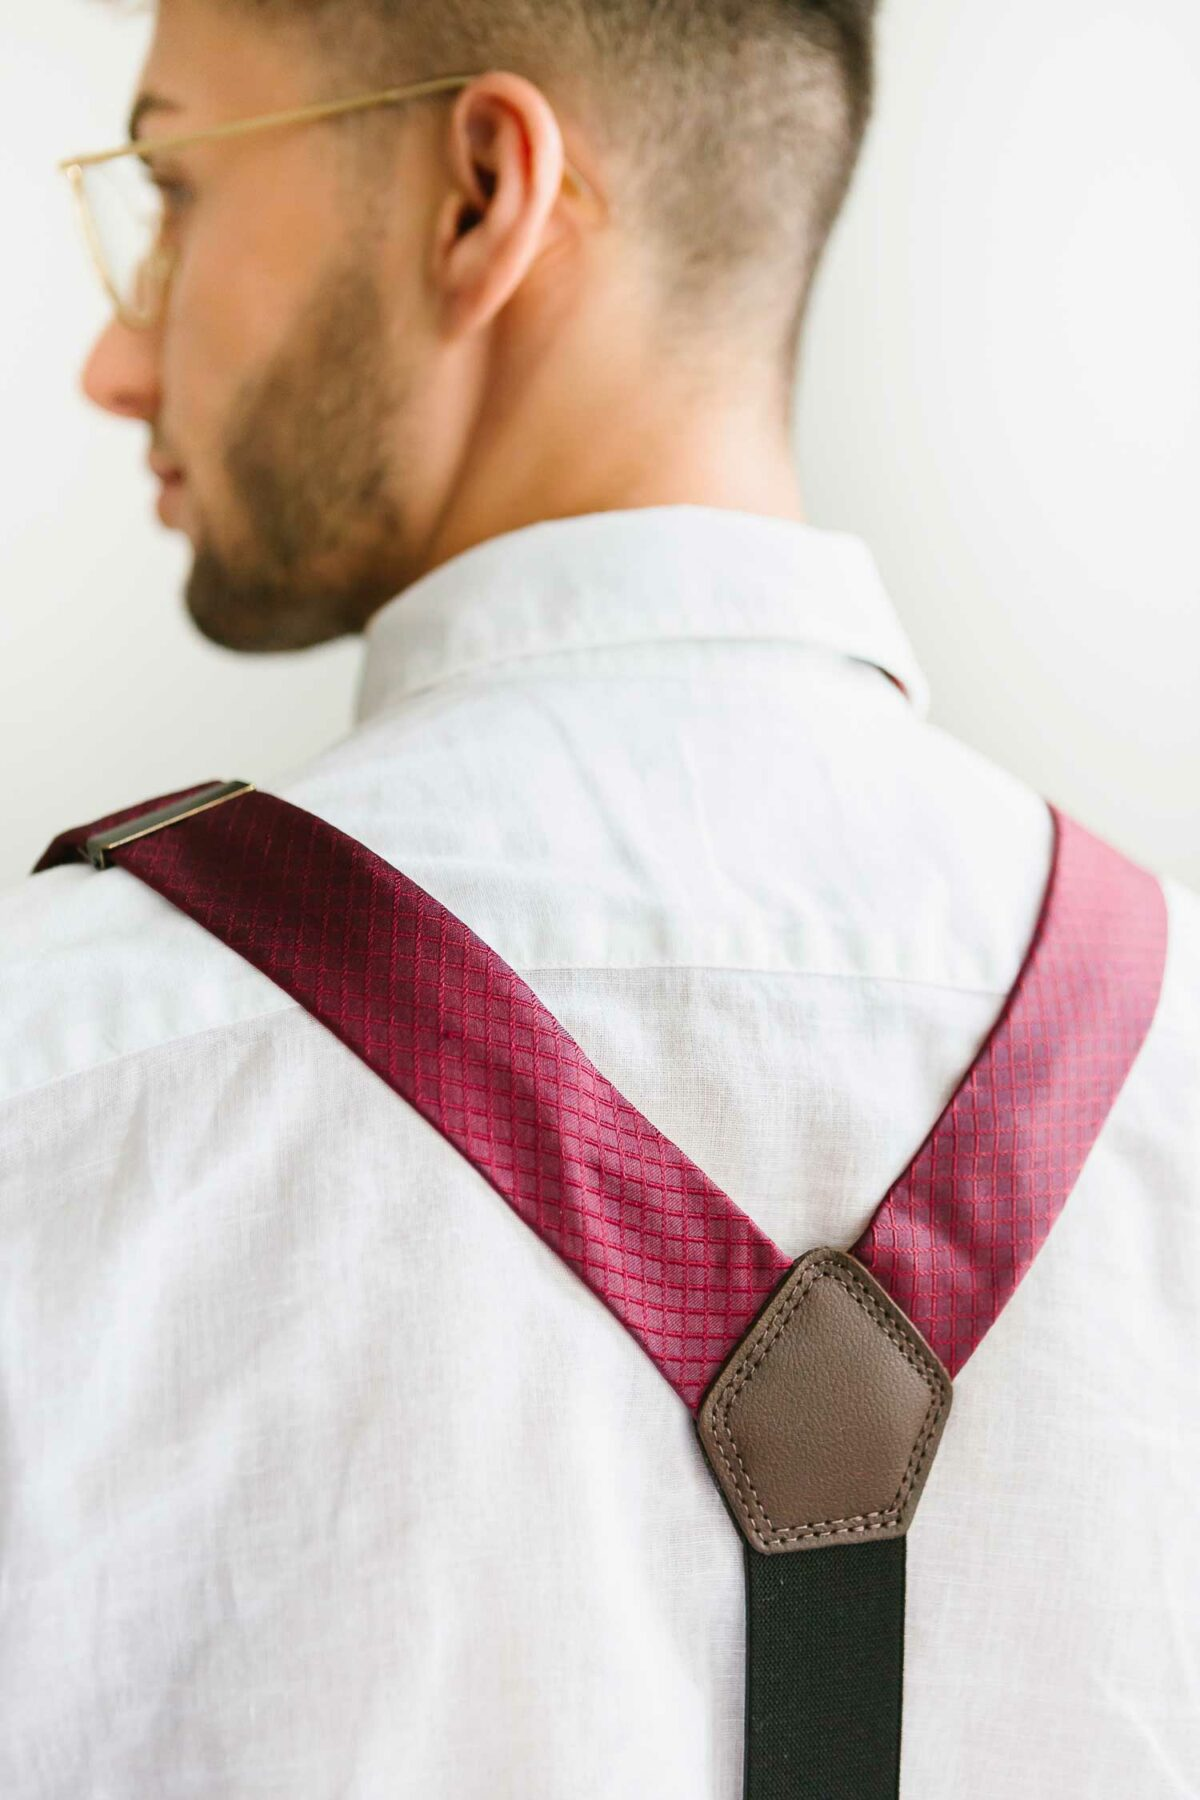 man with bordeaux red suspenders